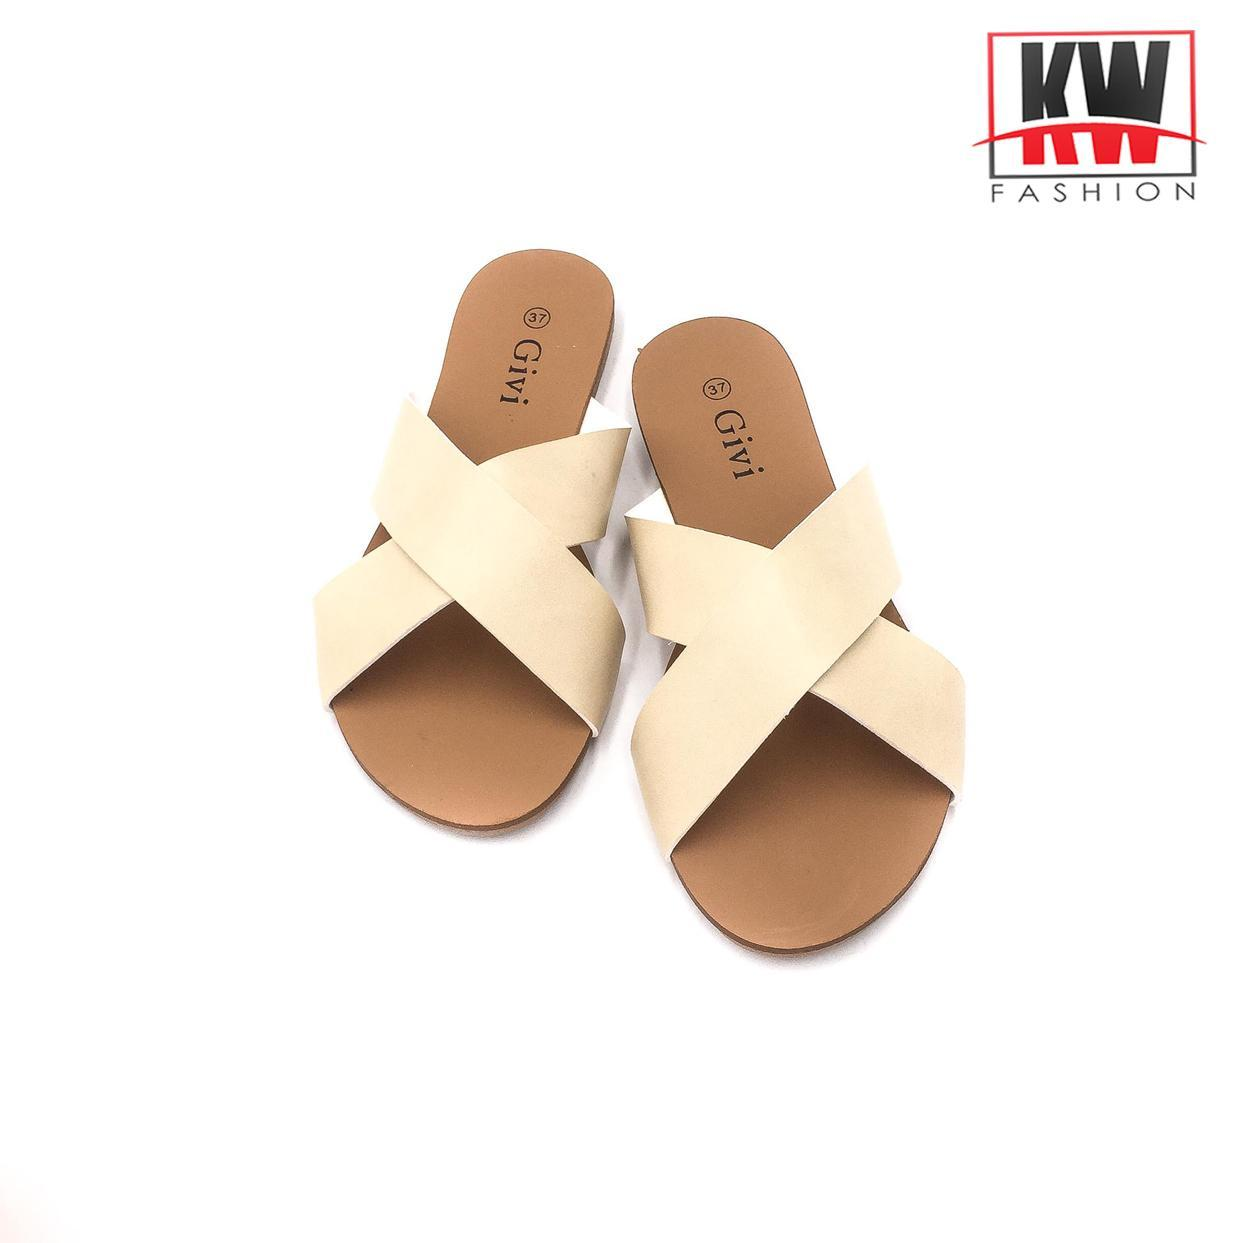 432c9fd81e4c7 Womens Sandals for sale - Ladies Sandals online brands